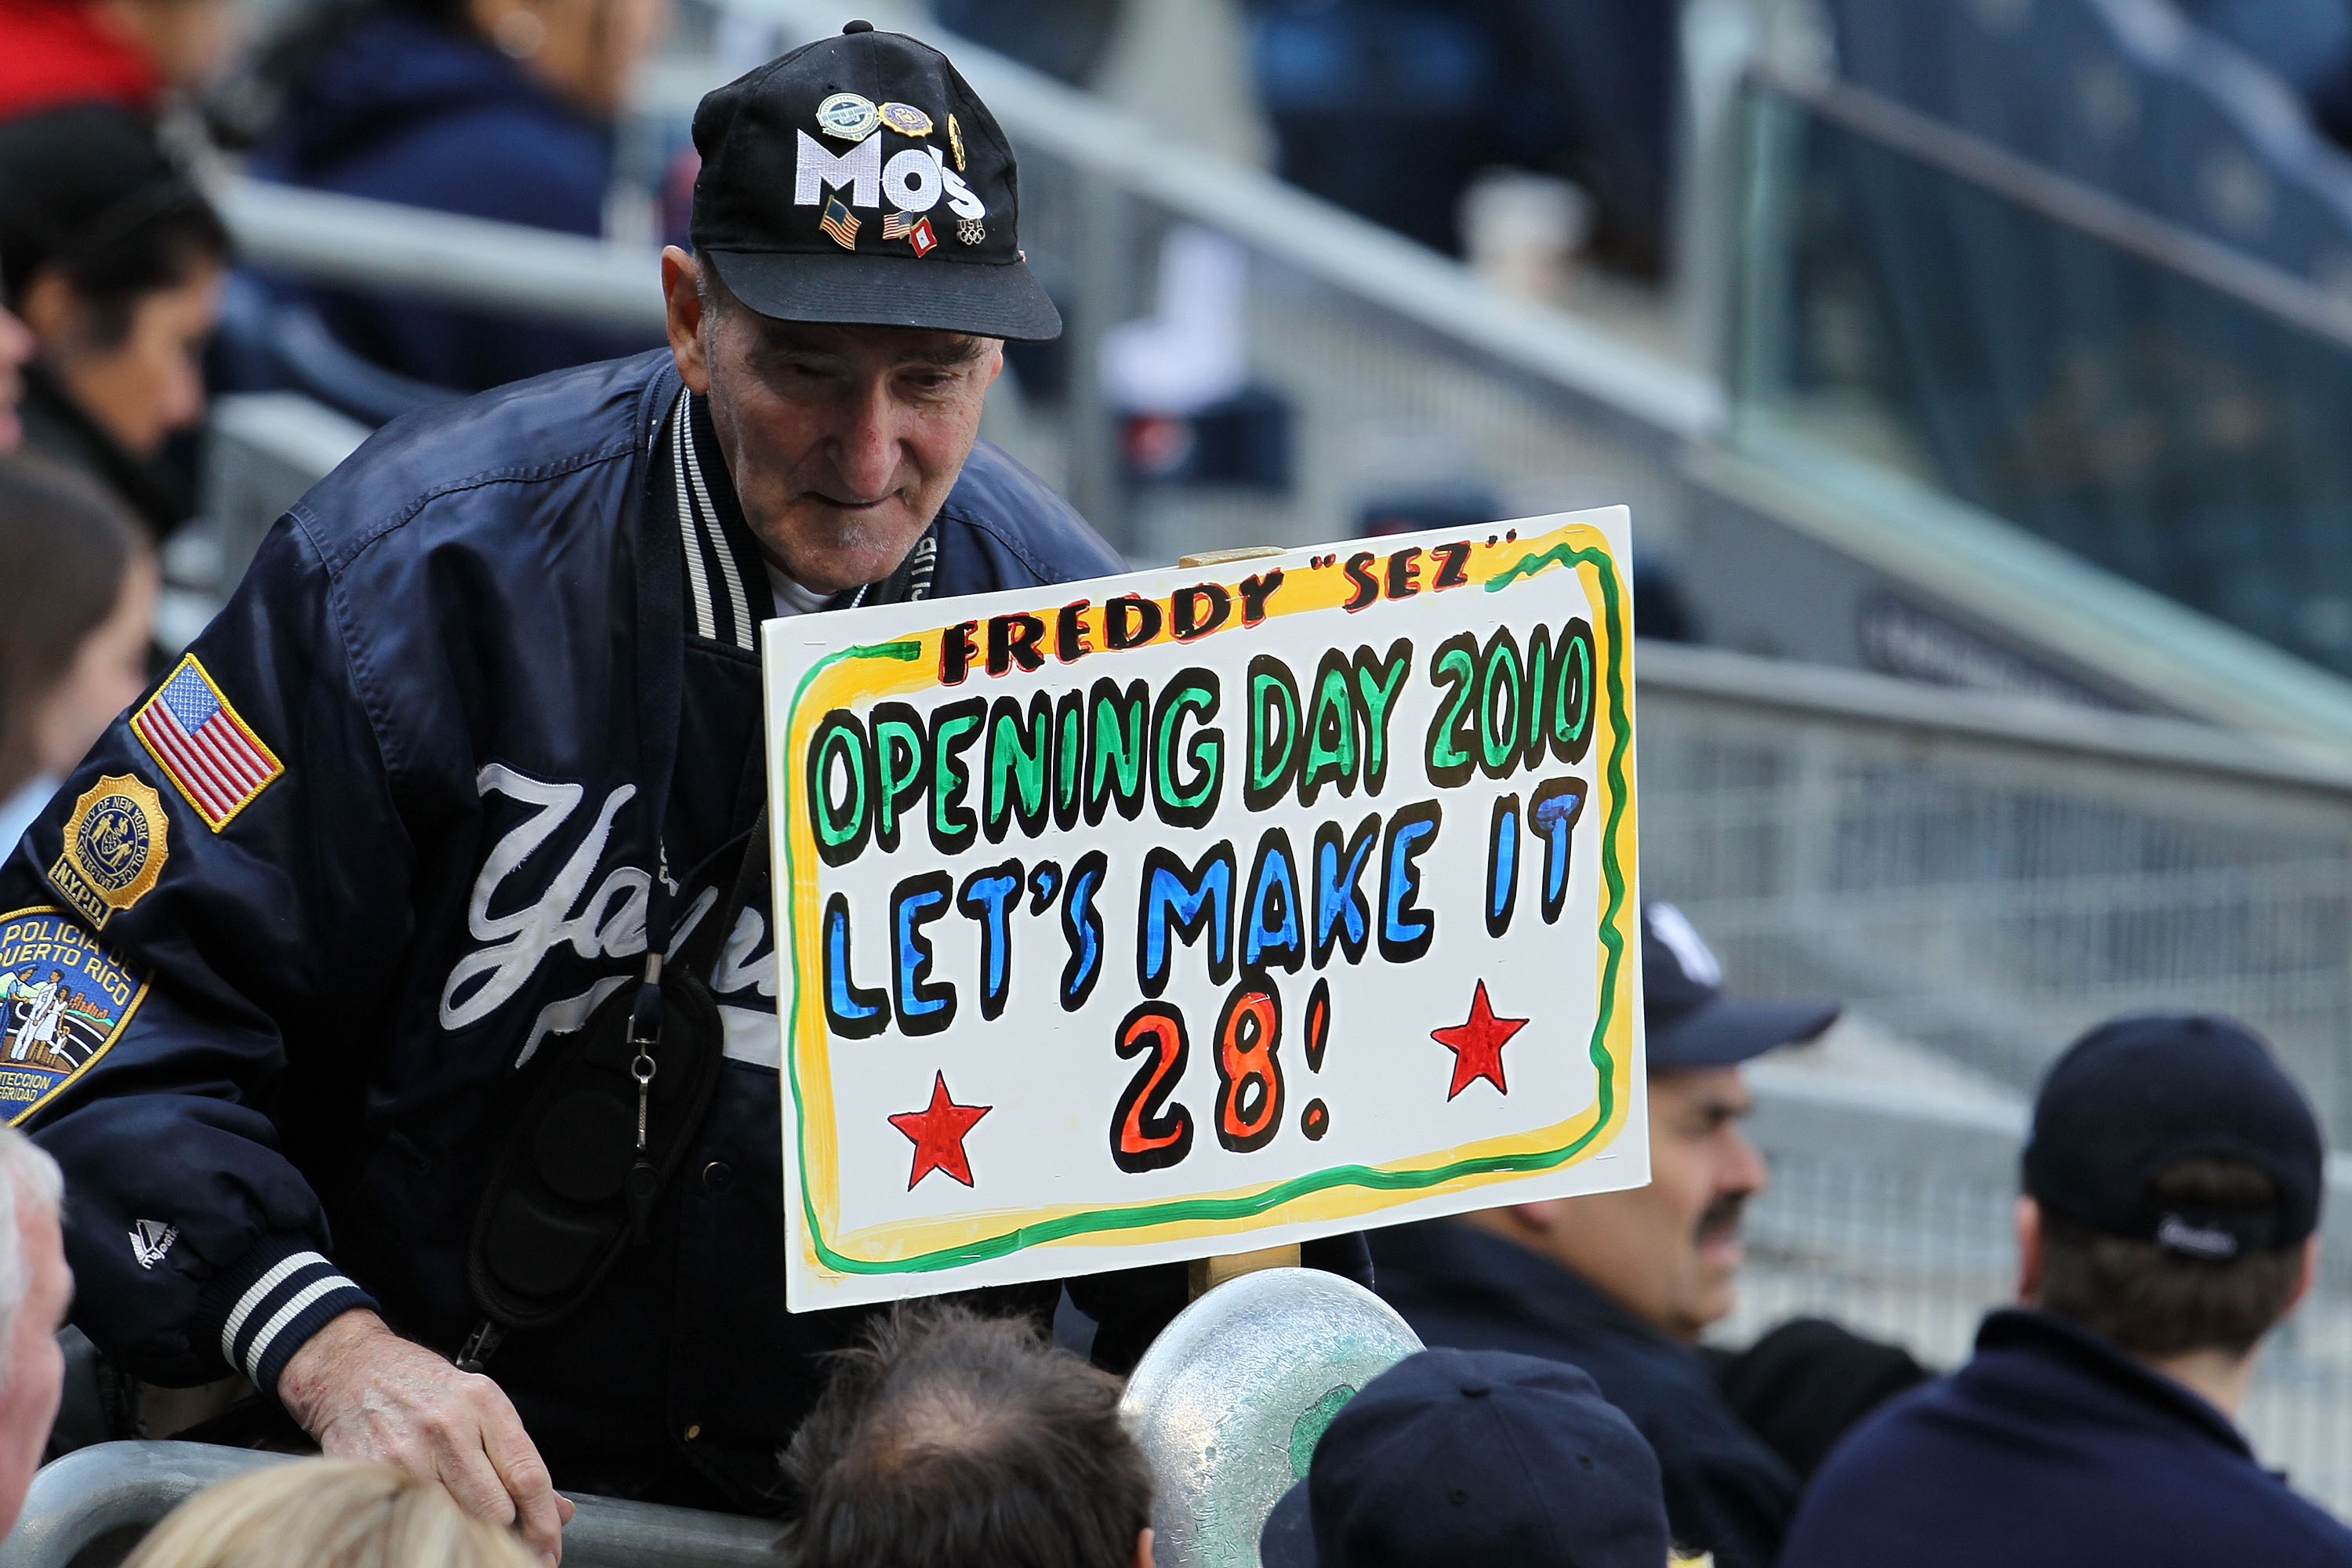 NEW YORK - APRIL 13:  Super fan Freddy Sez holds up a sign reading 'Opening Day 2010 Let's Makes It 28!' as the New York Yankees play against the Los Angeles Angels of Anaheim during the Yankees home opener at Yankee Stadium on April 13, 2010 in the Bronx